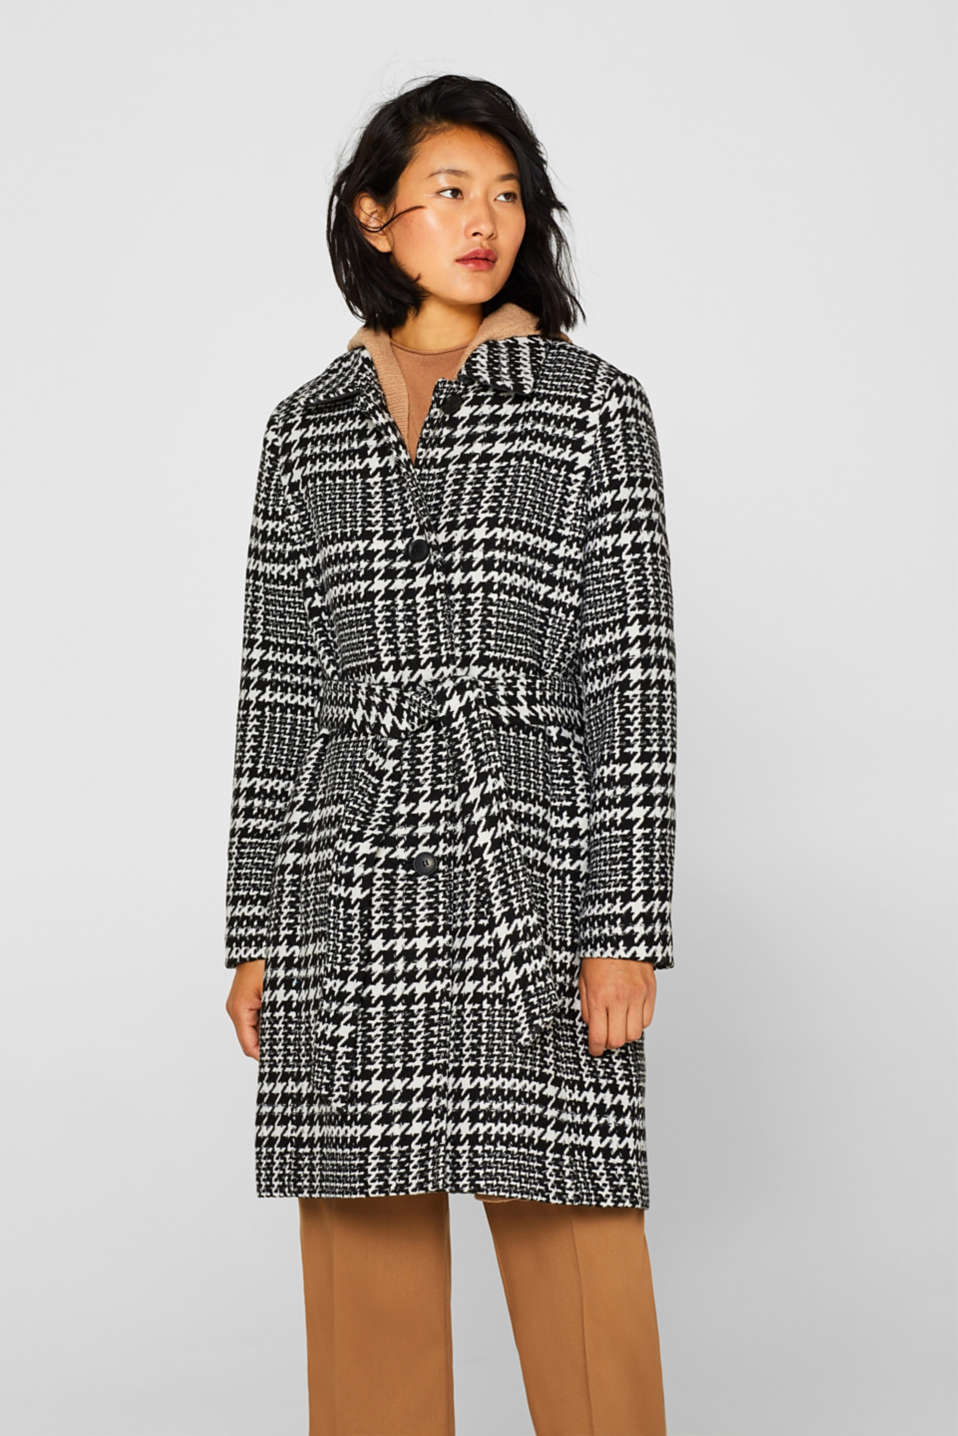 With wool: Coat with a houndstooth check